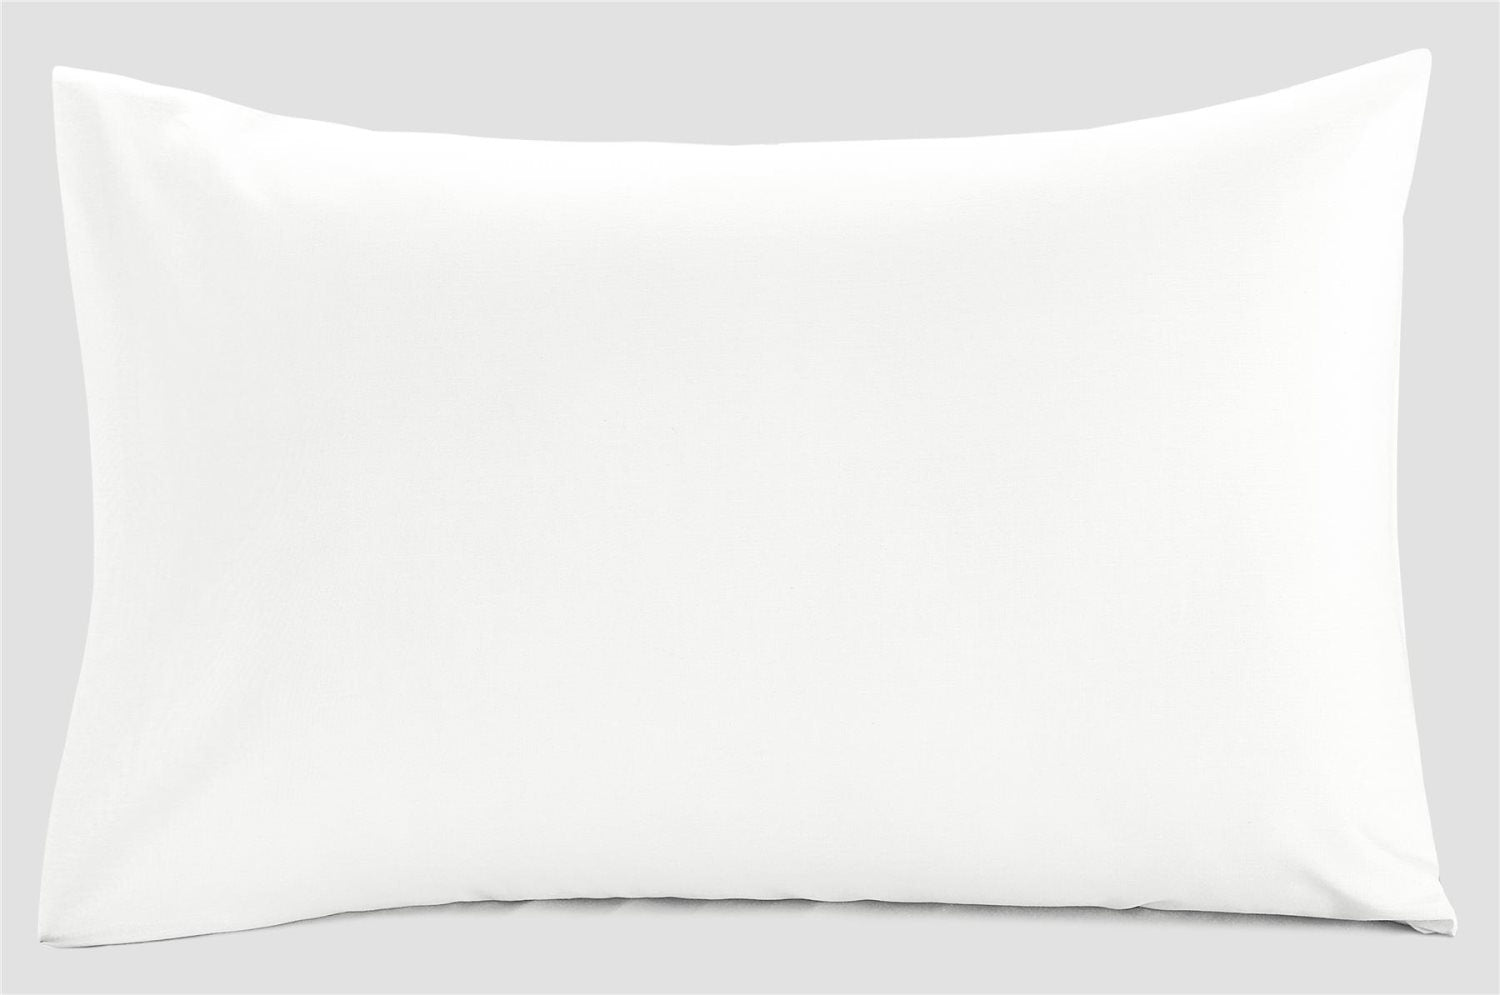 White Pillowcases Pack of 2 Standard Size Polycotton 150Tc